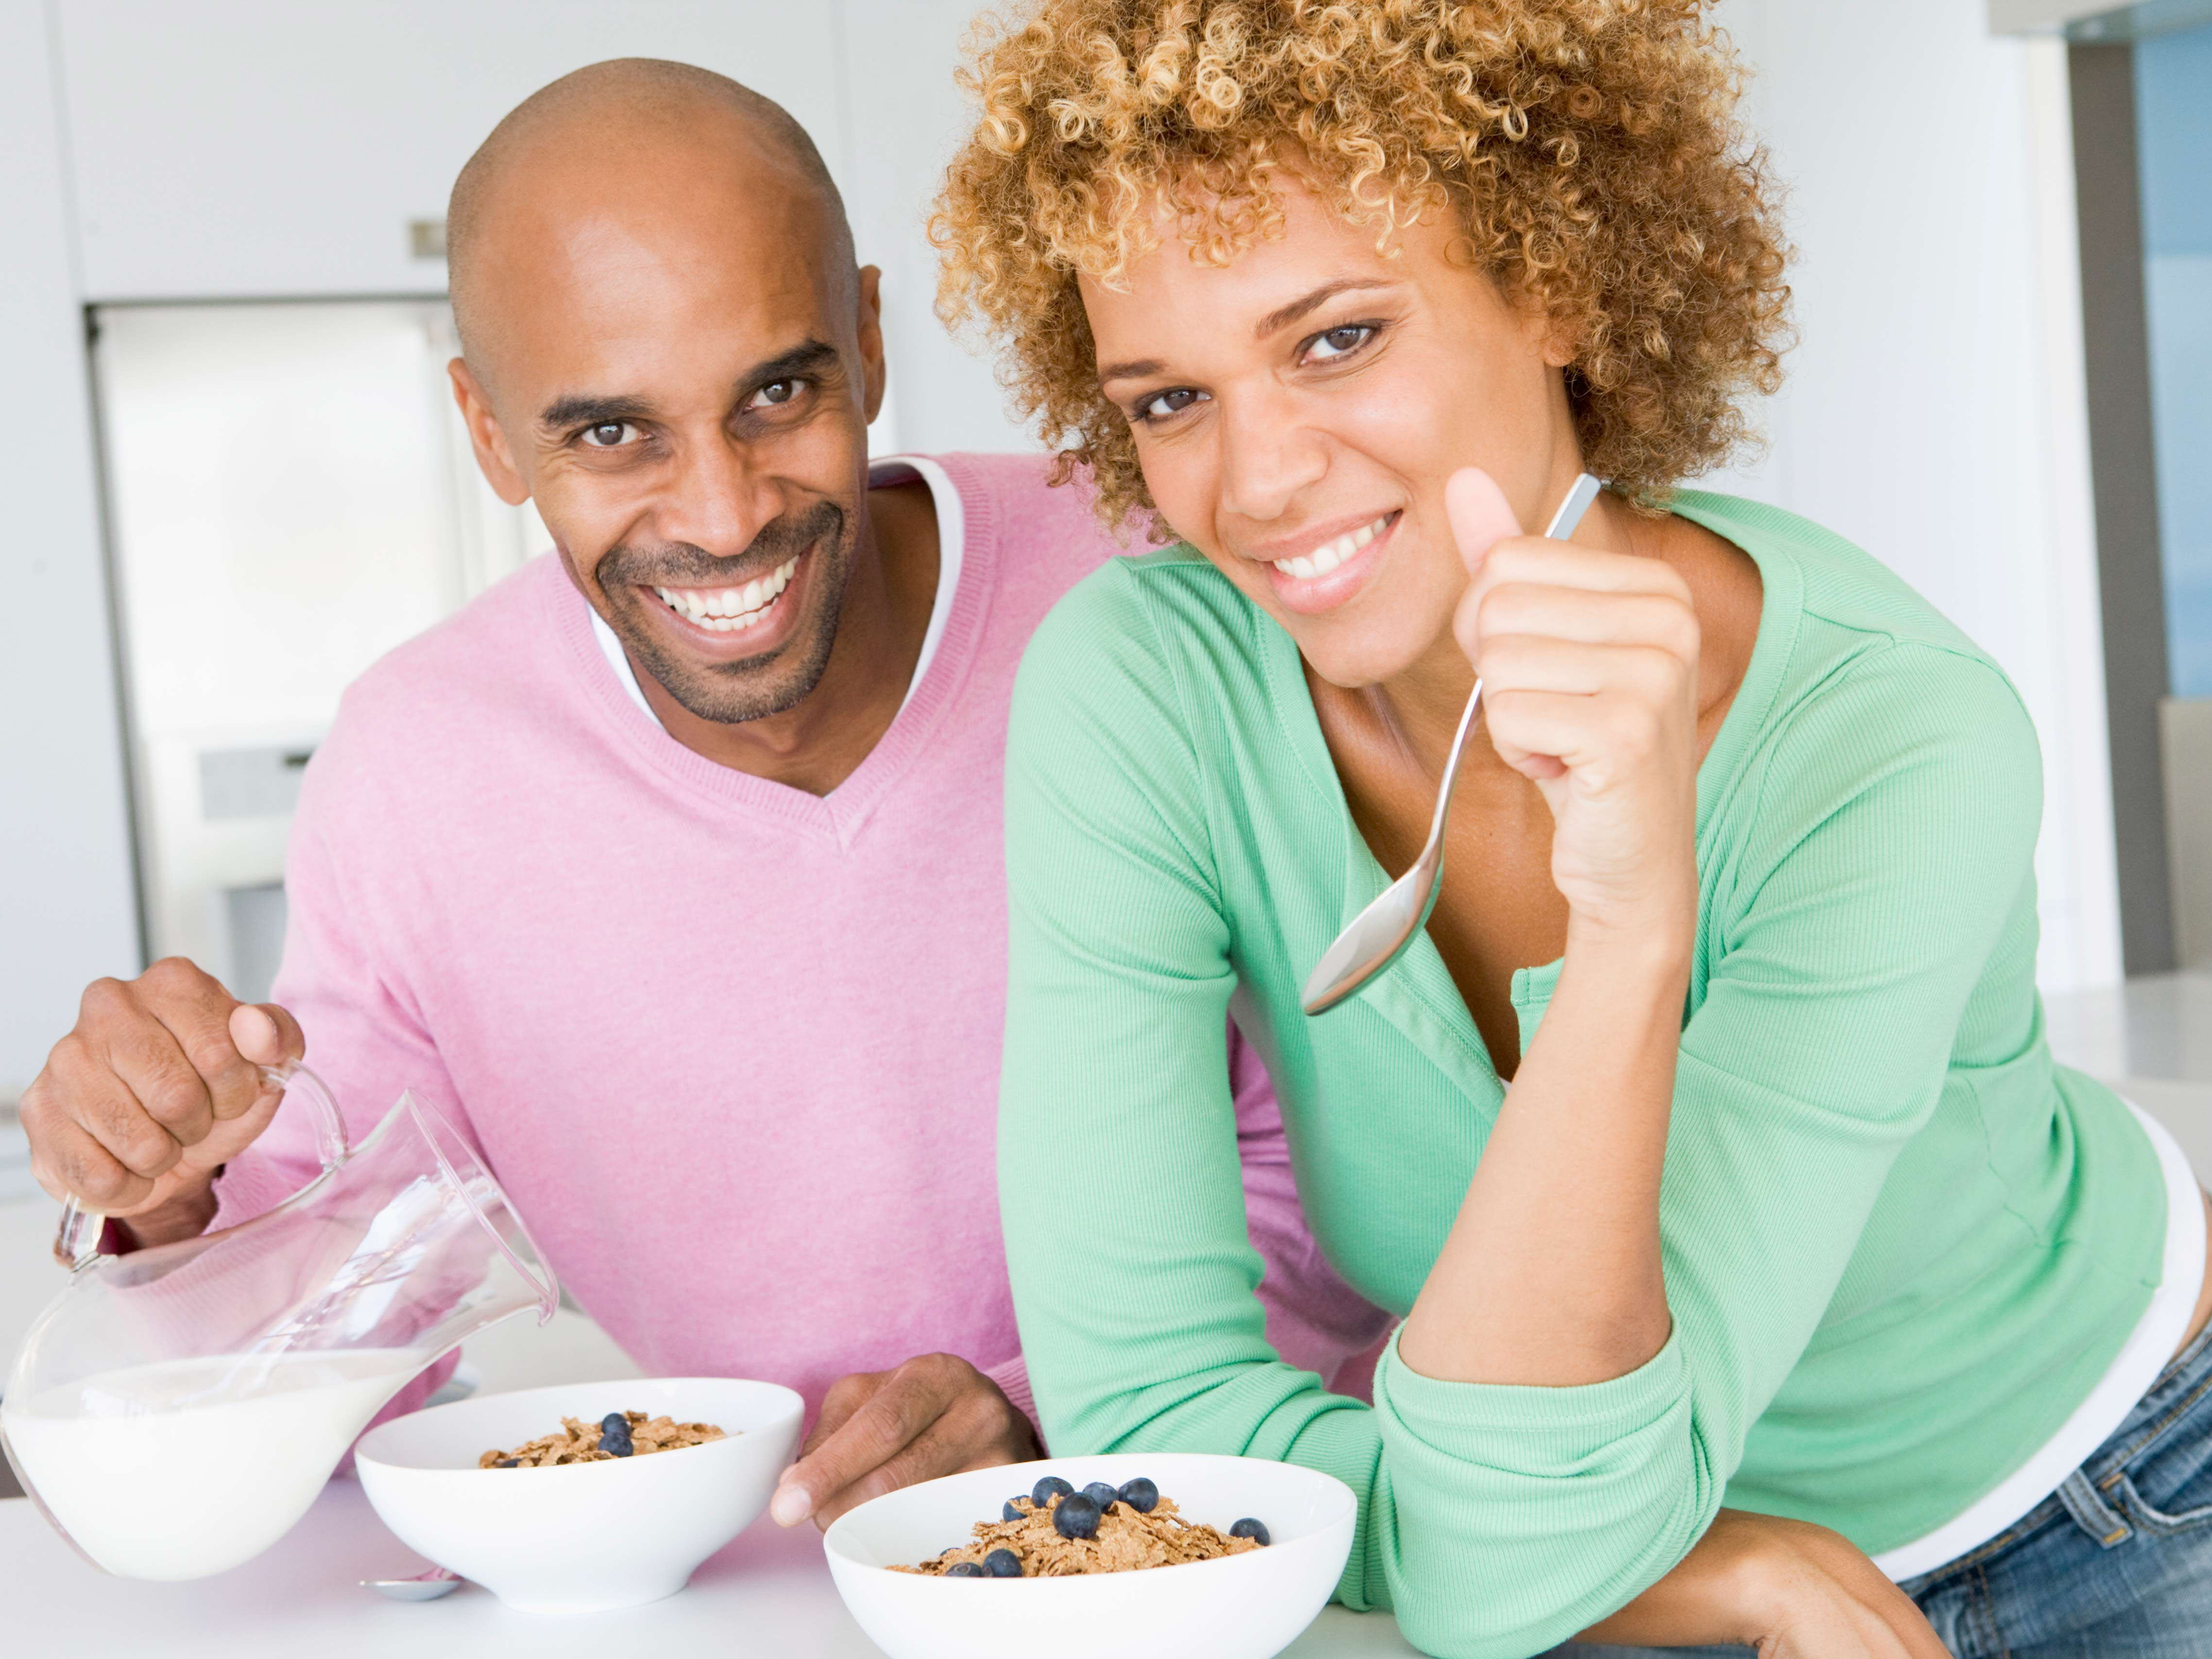 Skipping breakfast sparks sugar spikes your body can't recover from